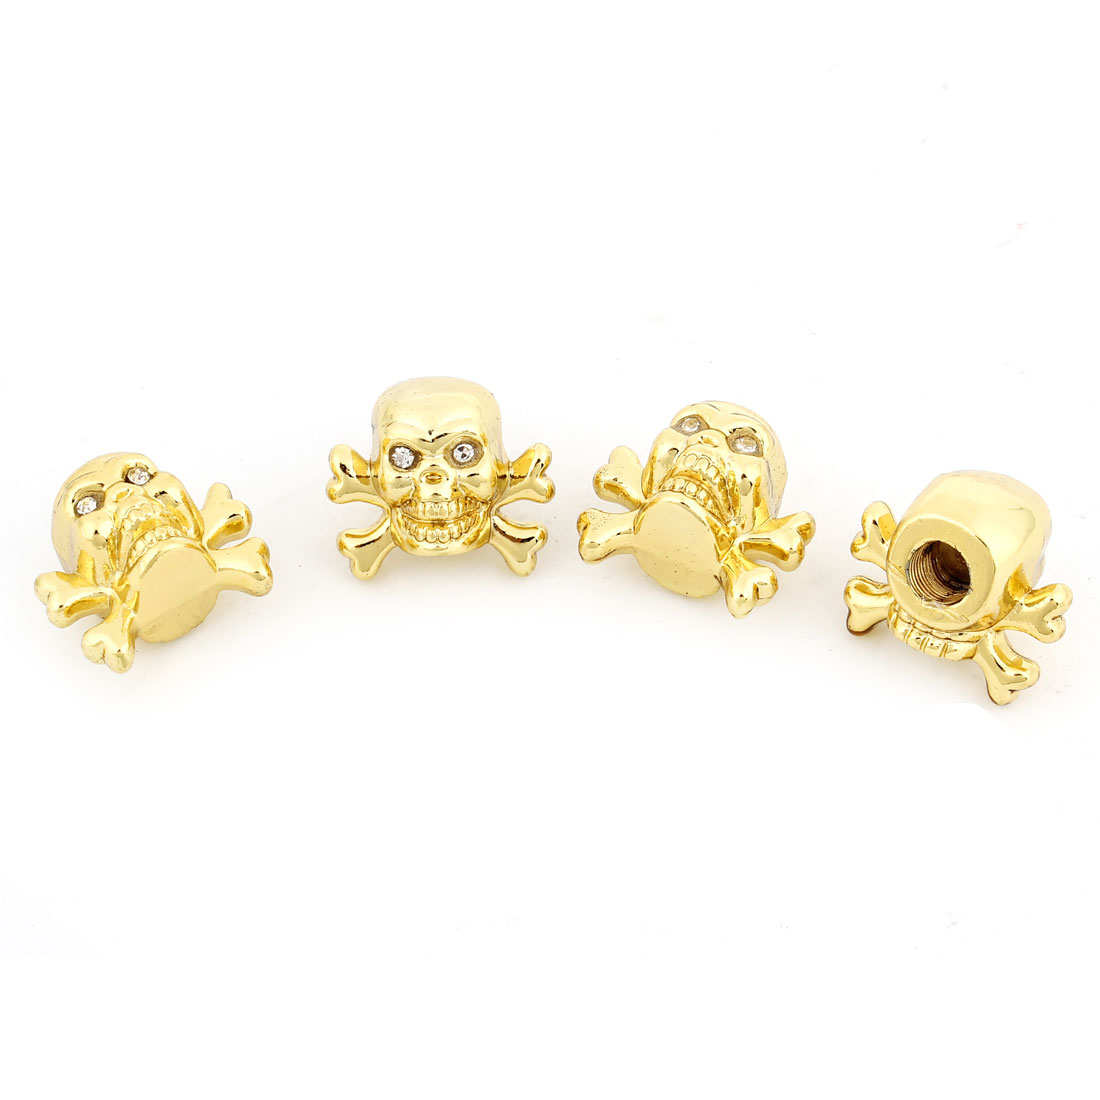 4 Pcs Auto Car Rhinestones Eyes Skull Shape Metal Tire Valve Dust Cap Cover Gold Tone